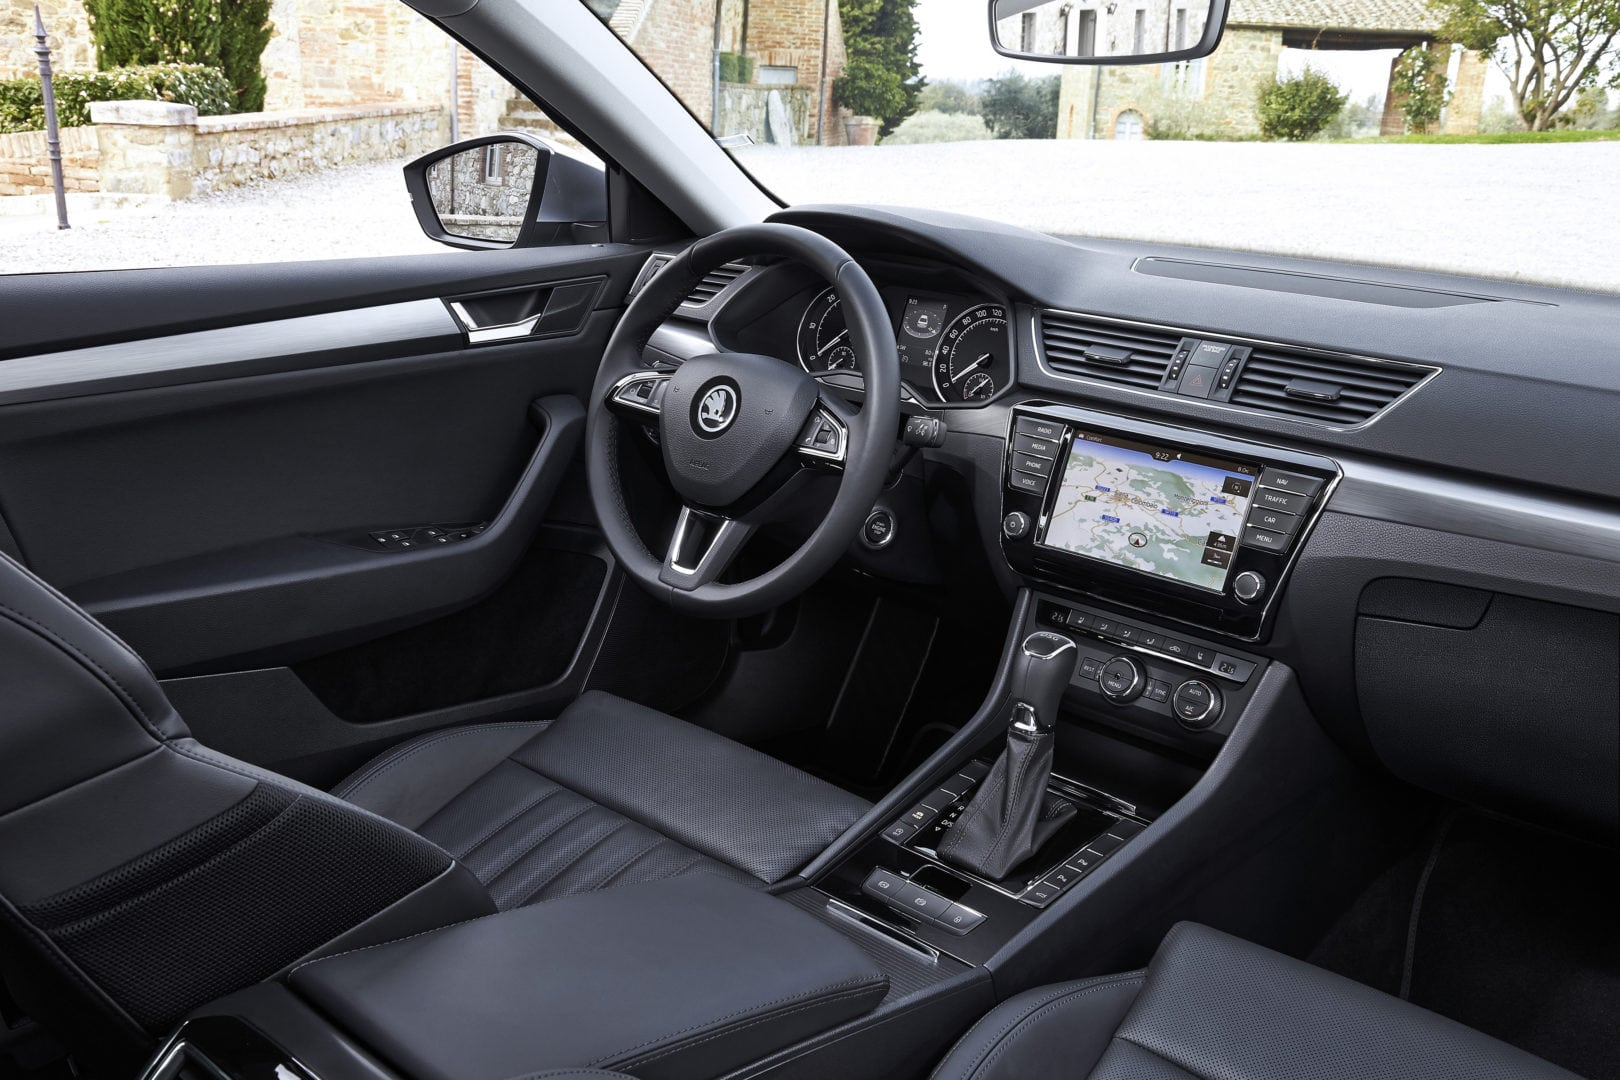 2016 superb cockpit